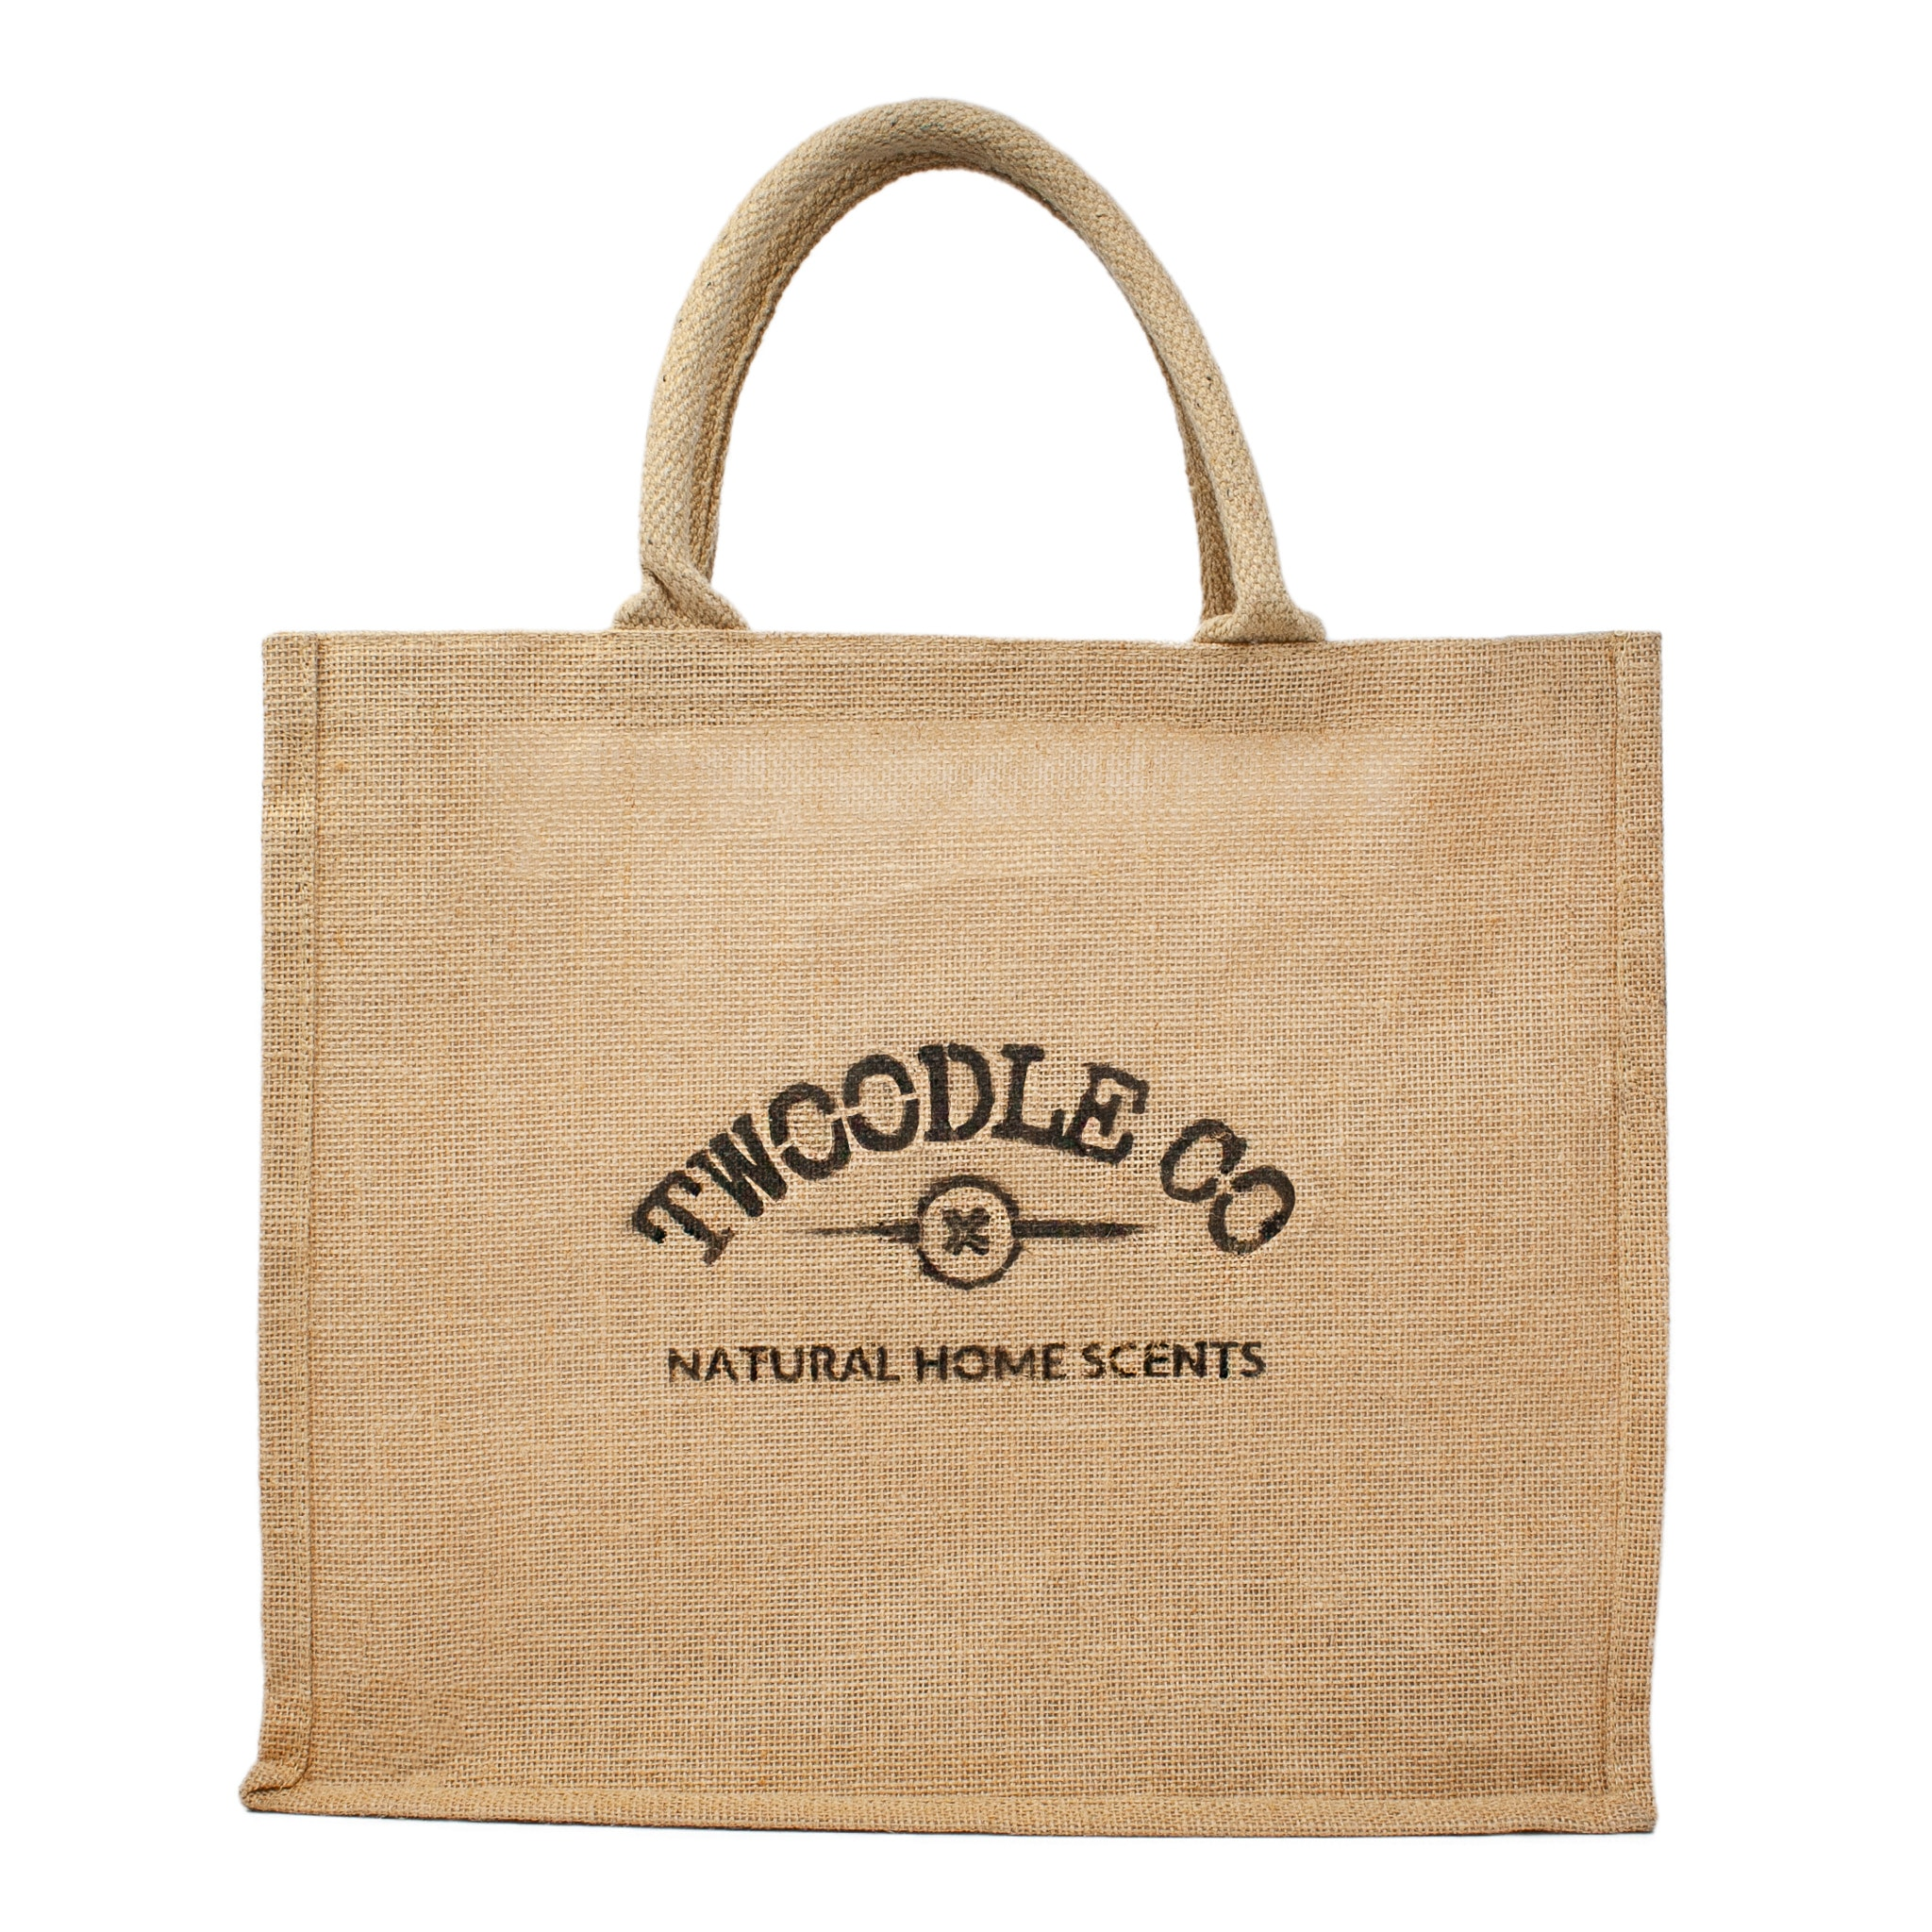 Eco friendly tote bag by Twoodle Co Natural Home Scents 4